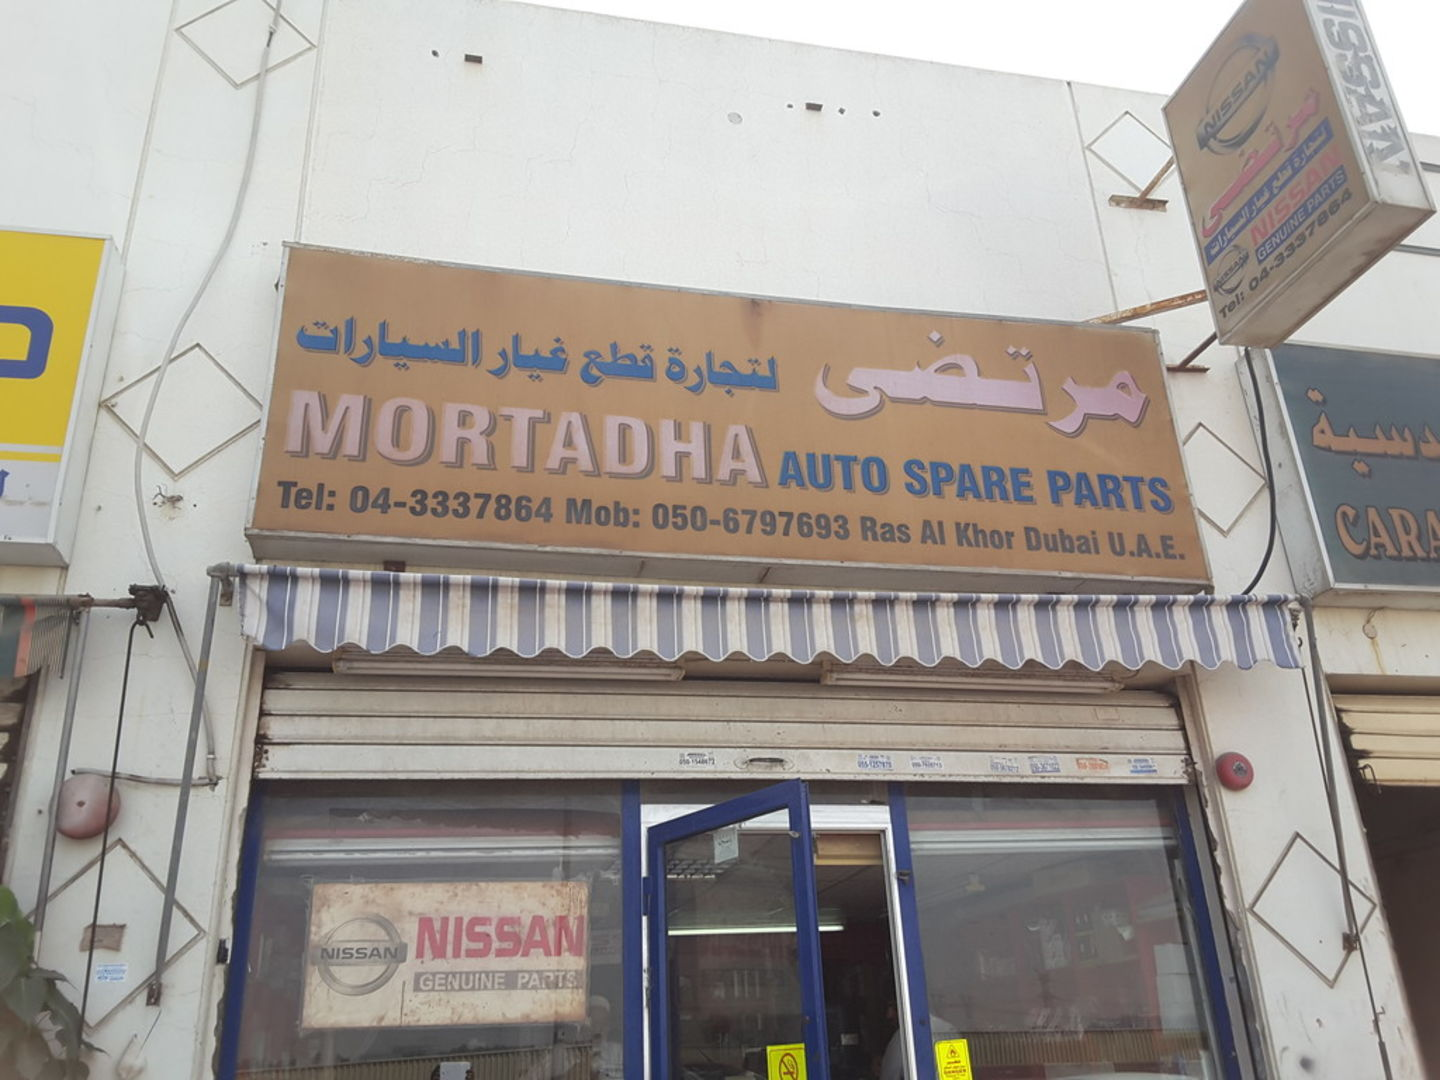 HiDubai-business-mortadha-auto-spare-parts-transport-vehicle-services-auto-spare-parts-accessories-ras-al-khor-industrial-1-dubai-2